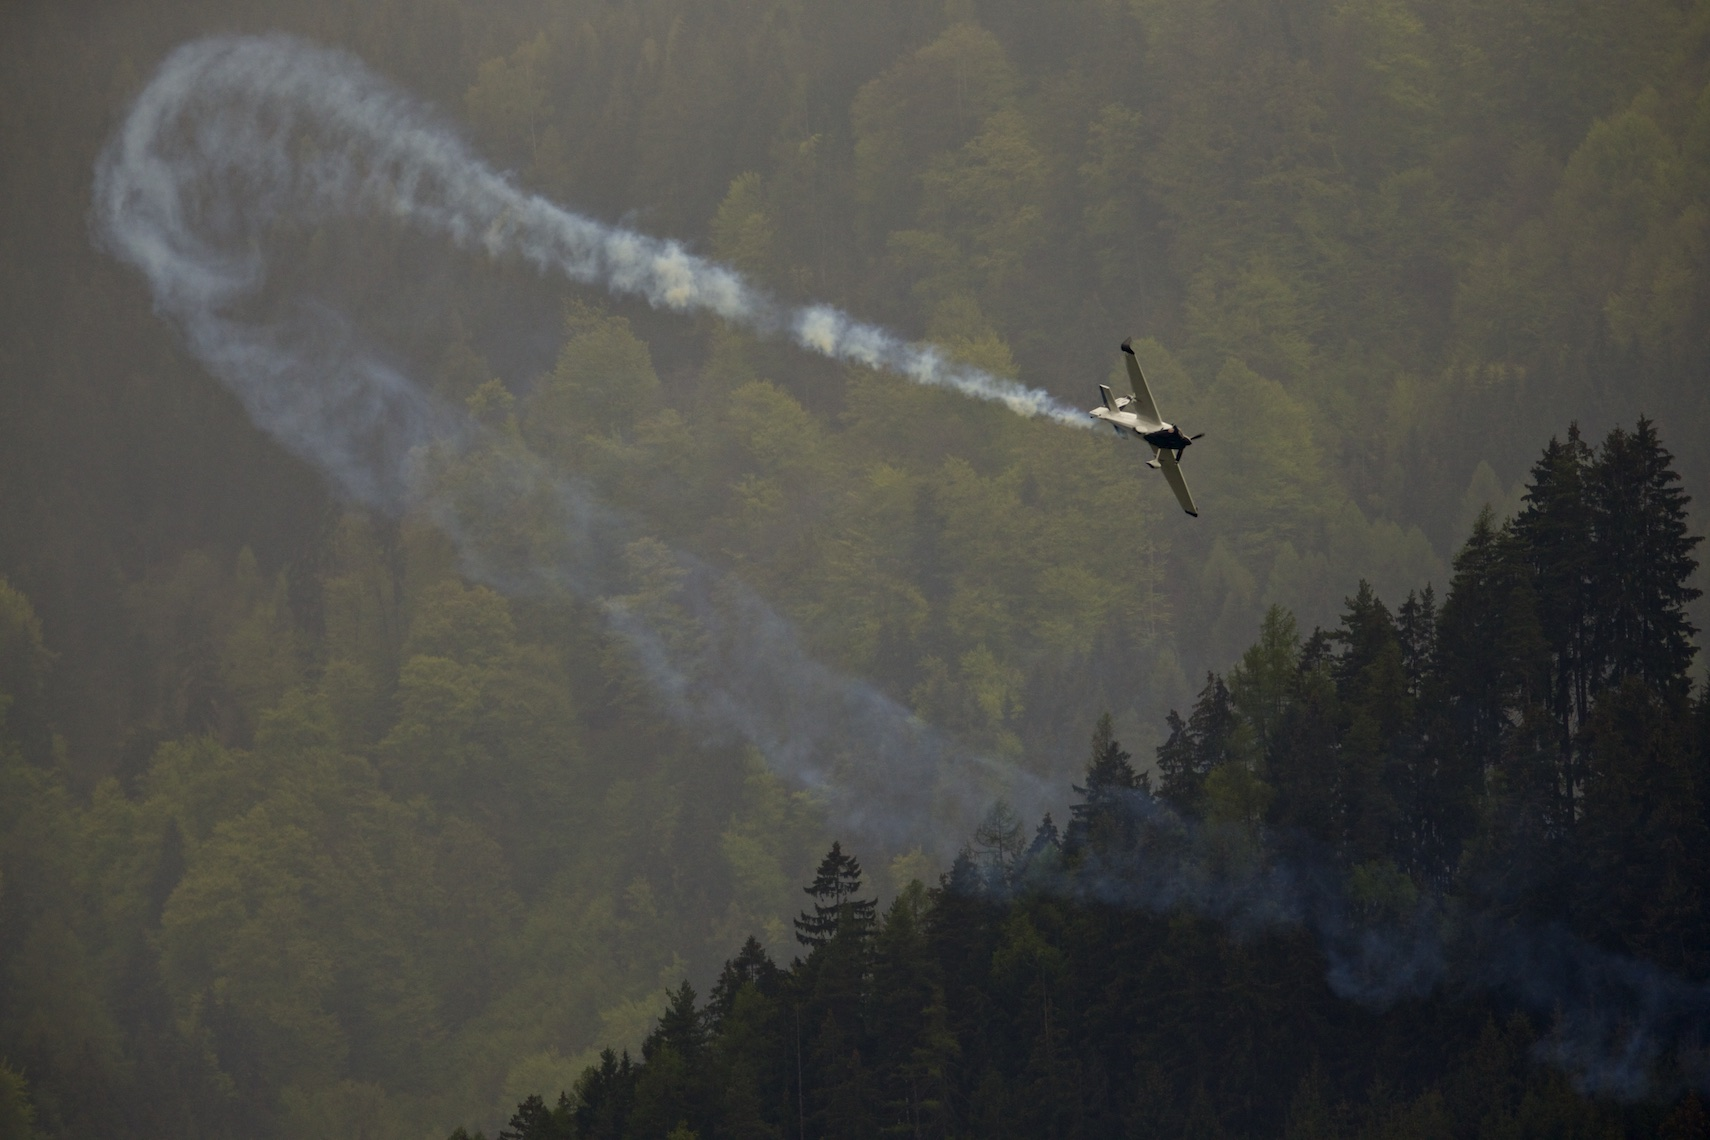 Red Bull Air Race, Spielberg, Austria